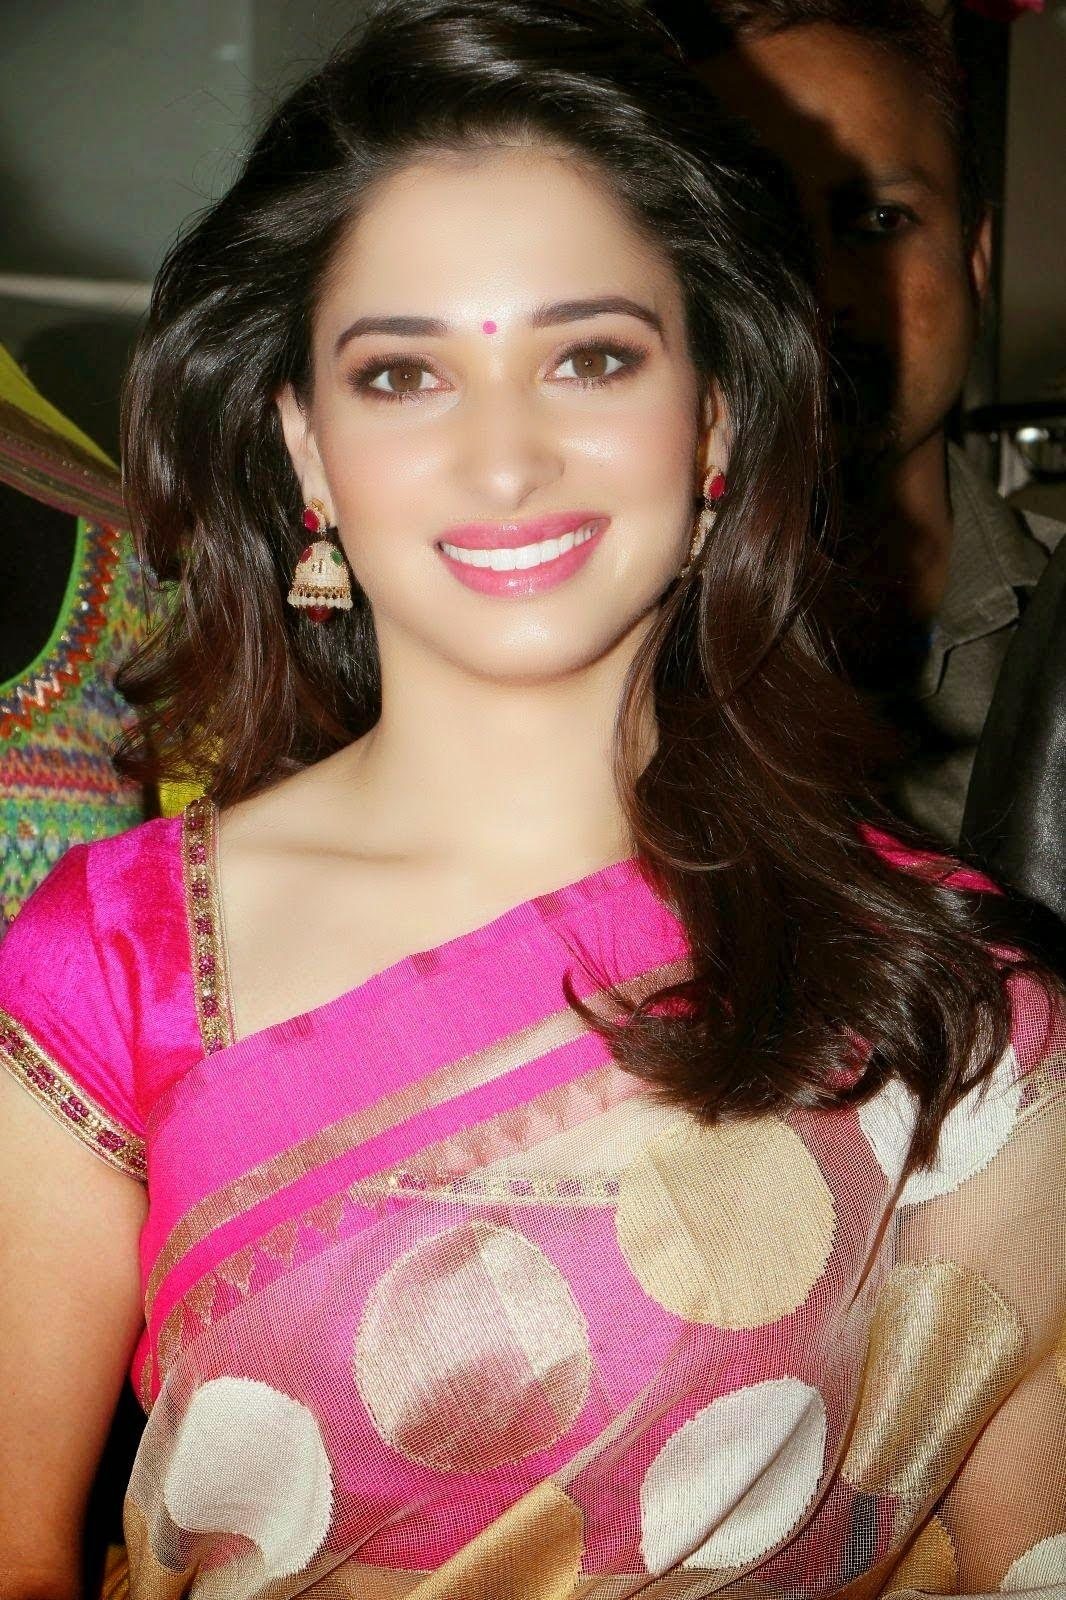 Tamanna Bhatia Hd Wallpapers In Saree Wallpaper Cave